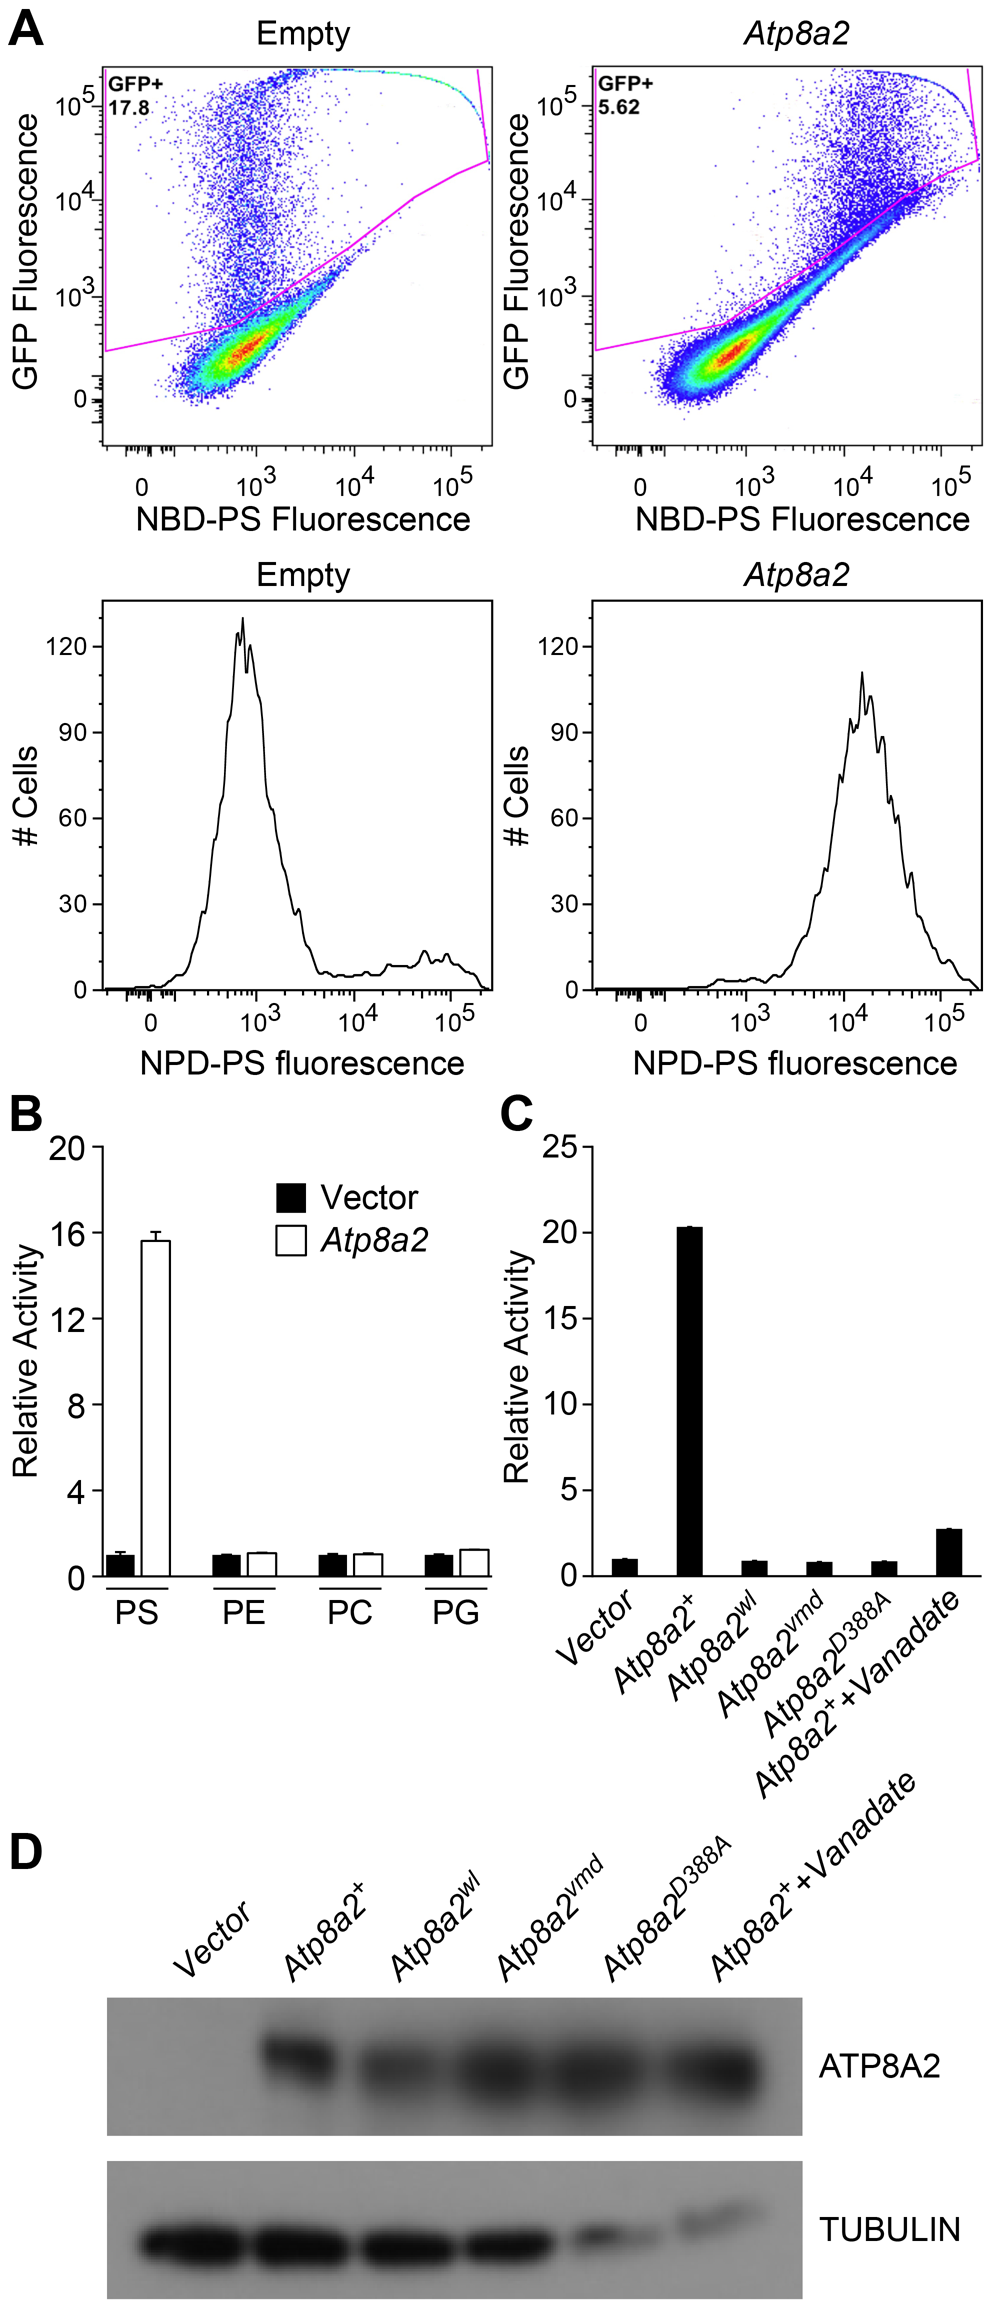 ATP8A2 contains phosphatidylserine translocase activity.